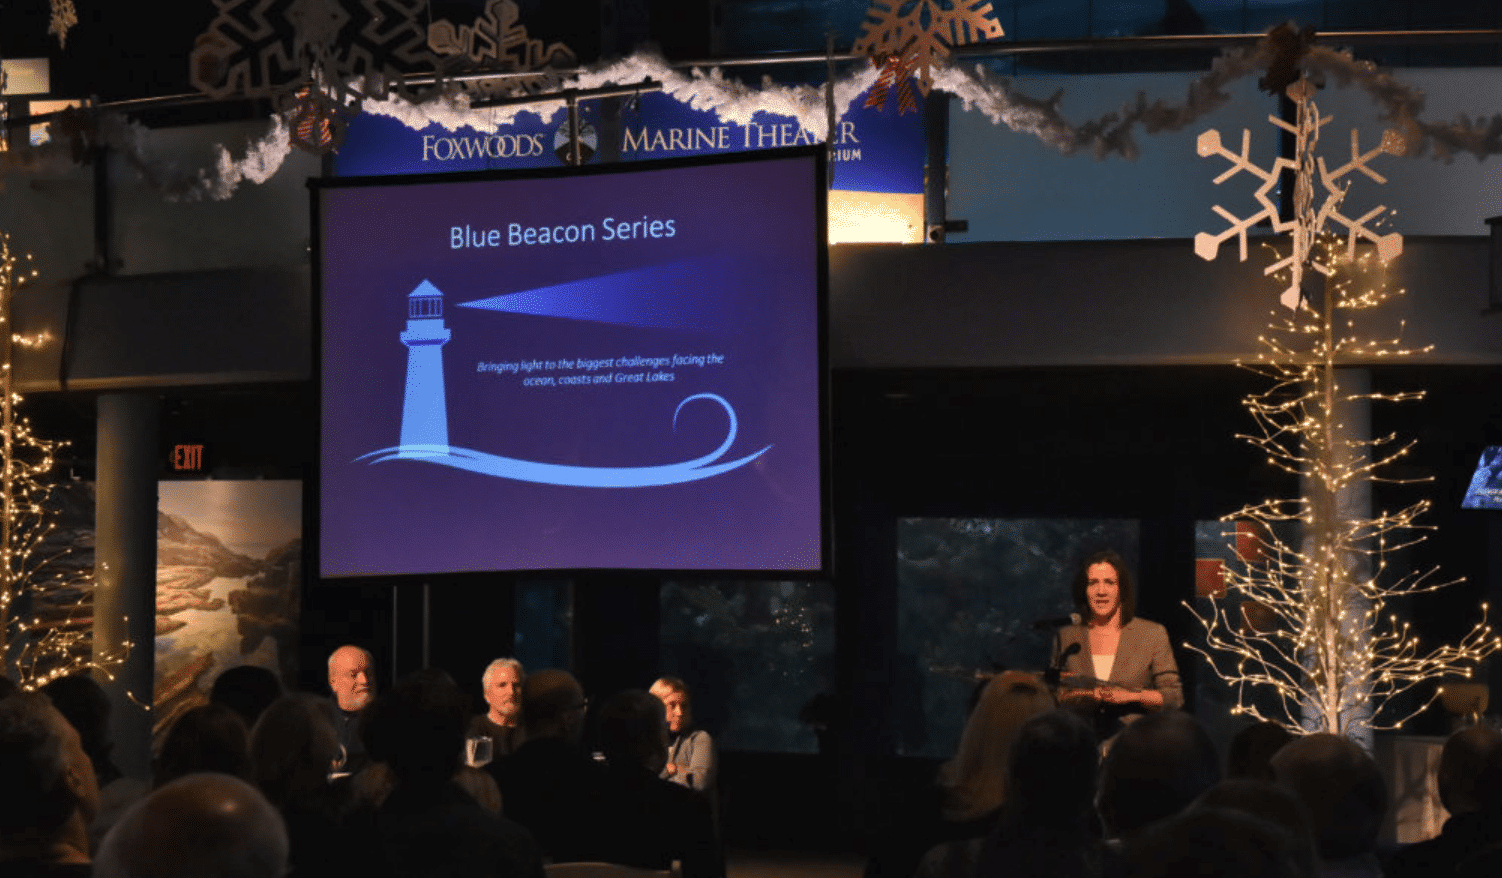 National Marine Sanctuary Foundation 'Blue Beacon Series' Set For Baltimore And Detroit